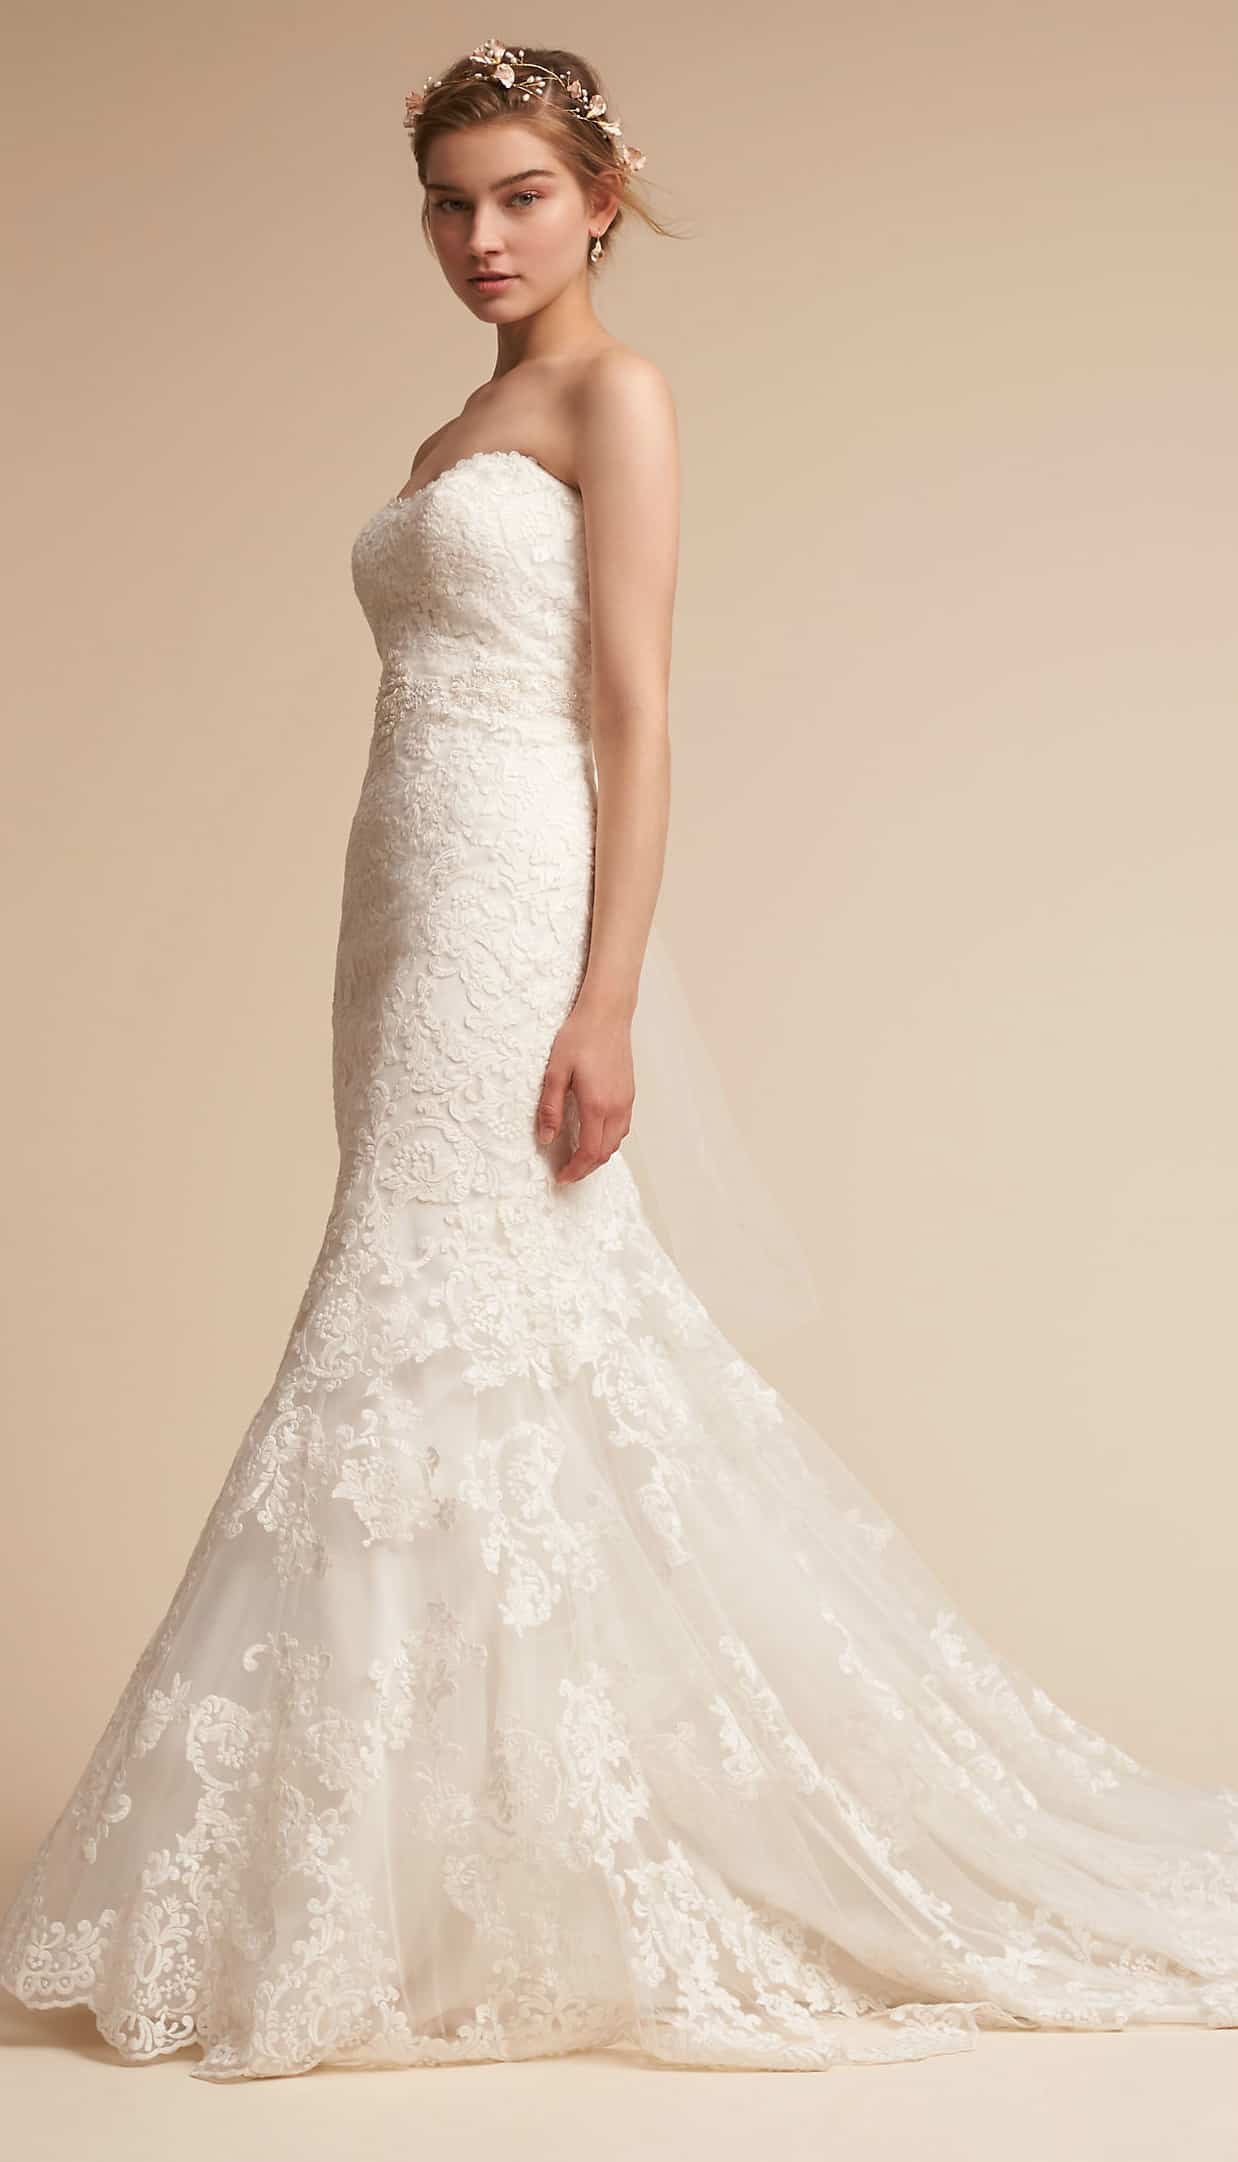 Fitted strapless lace wedding dress with long train for Strapless wedding dresses with long trains